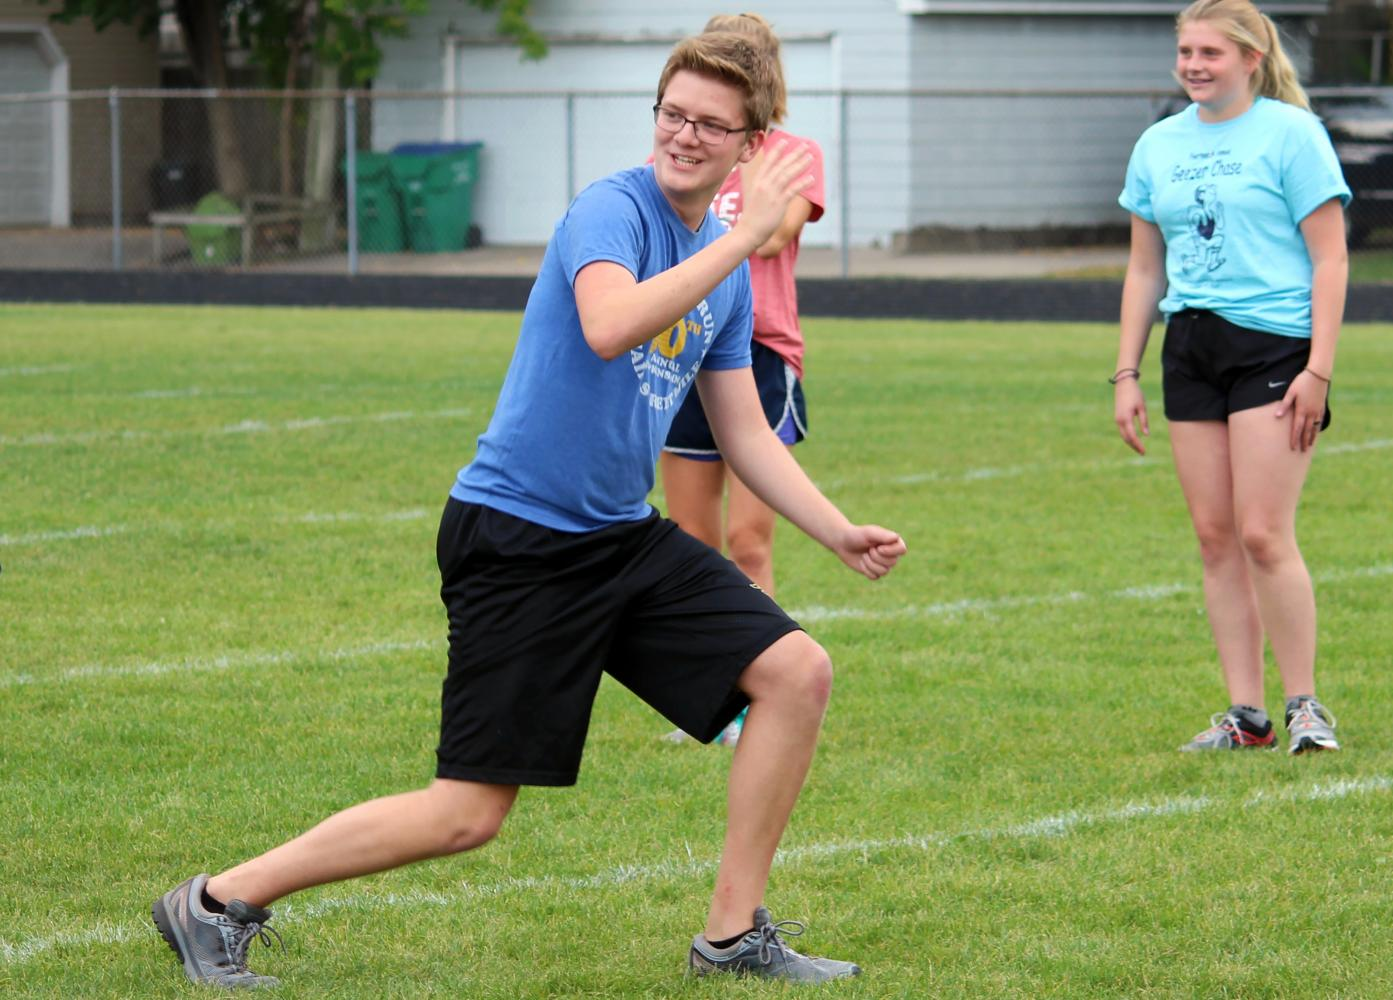 Senior Collin Perkins leads warm ups at the start of cross country practice Sept. 15.